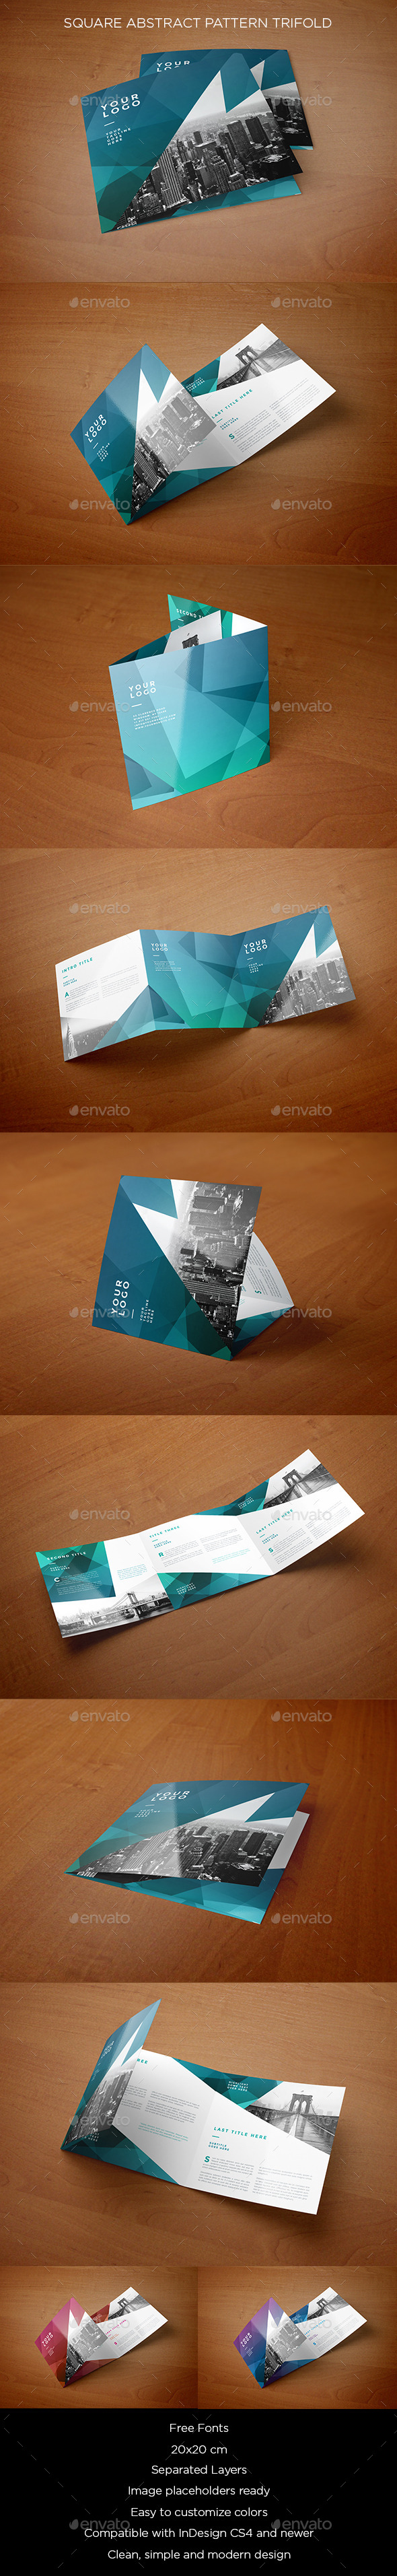 Square Abstract Pattern Trifold - Brochures Print Templates